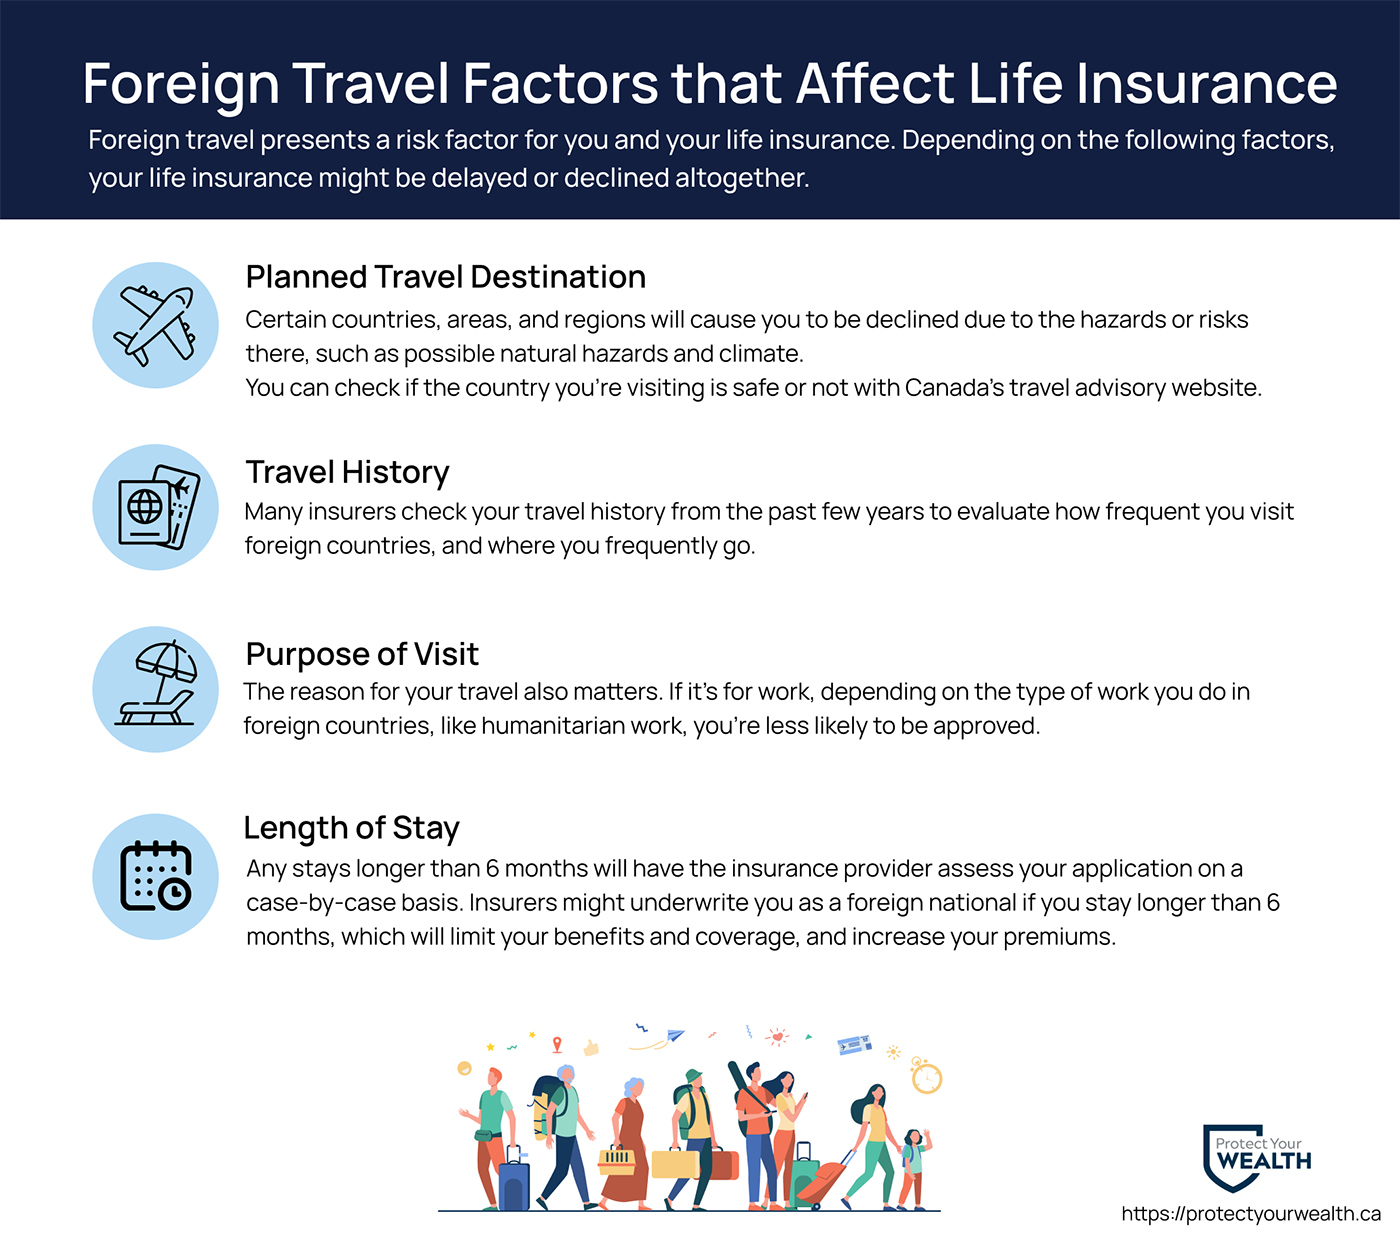 Foreign travel factors that affect life insurance. Your travel destination, travel history, purpose of visit, and length of stay all affect your life insurance application.